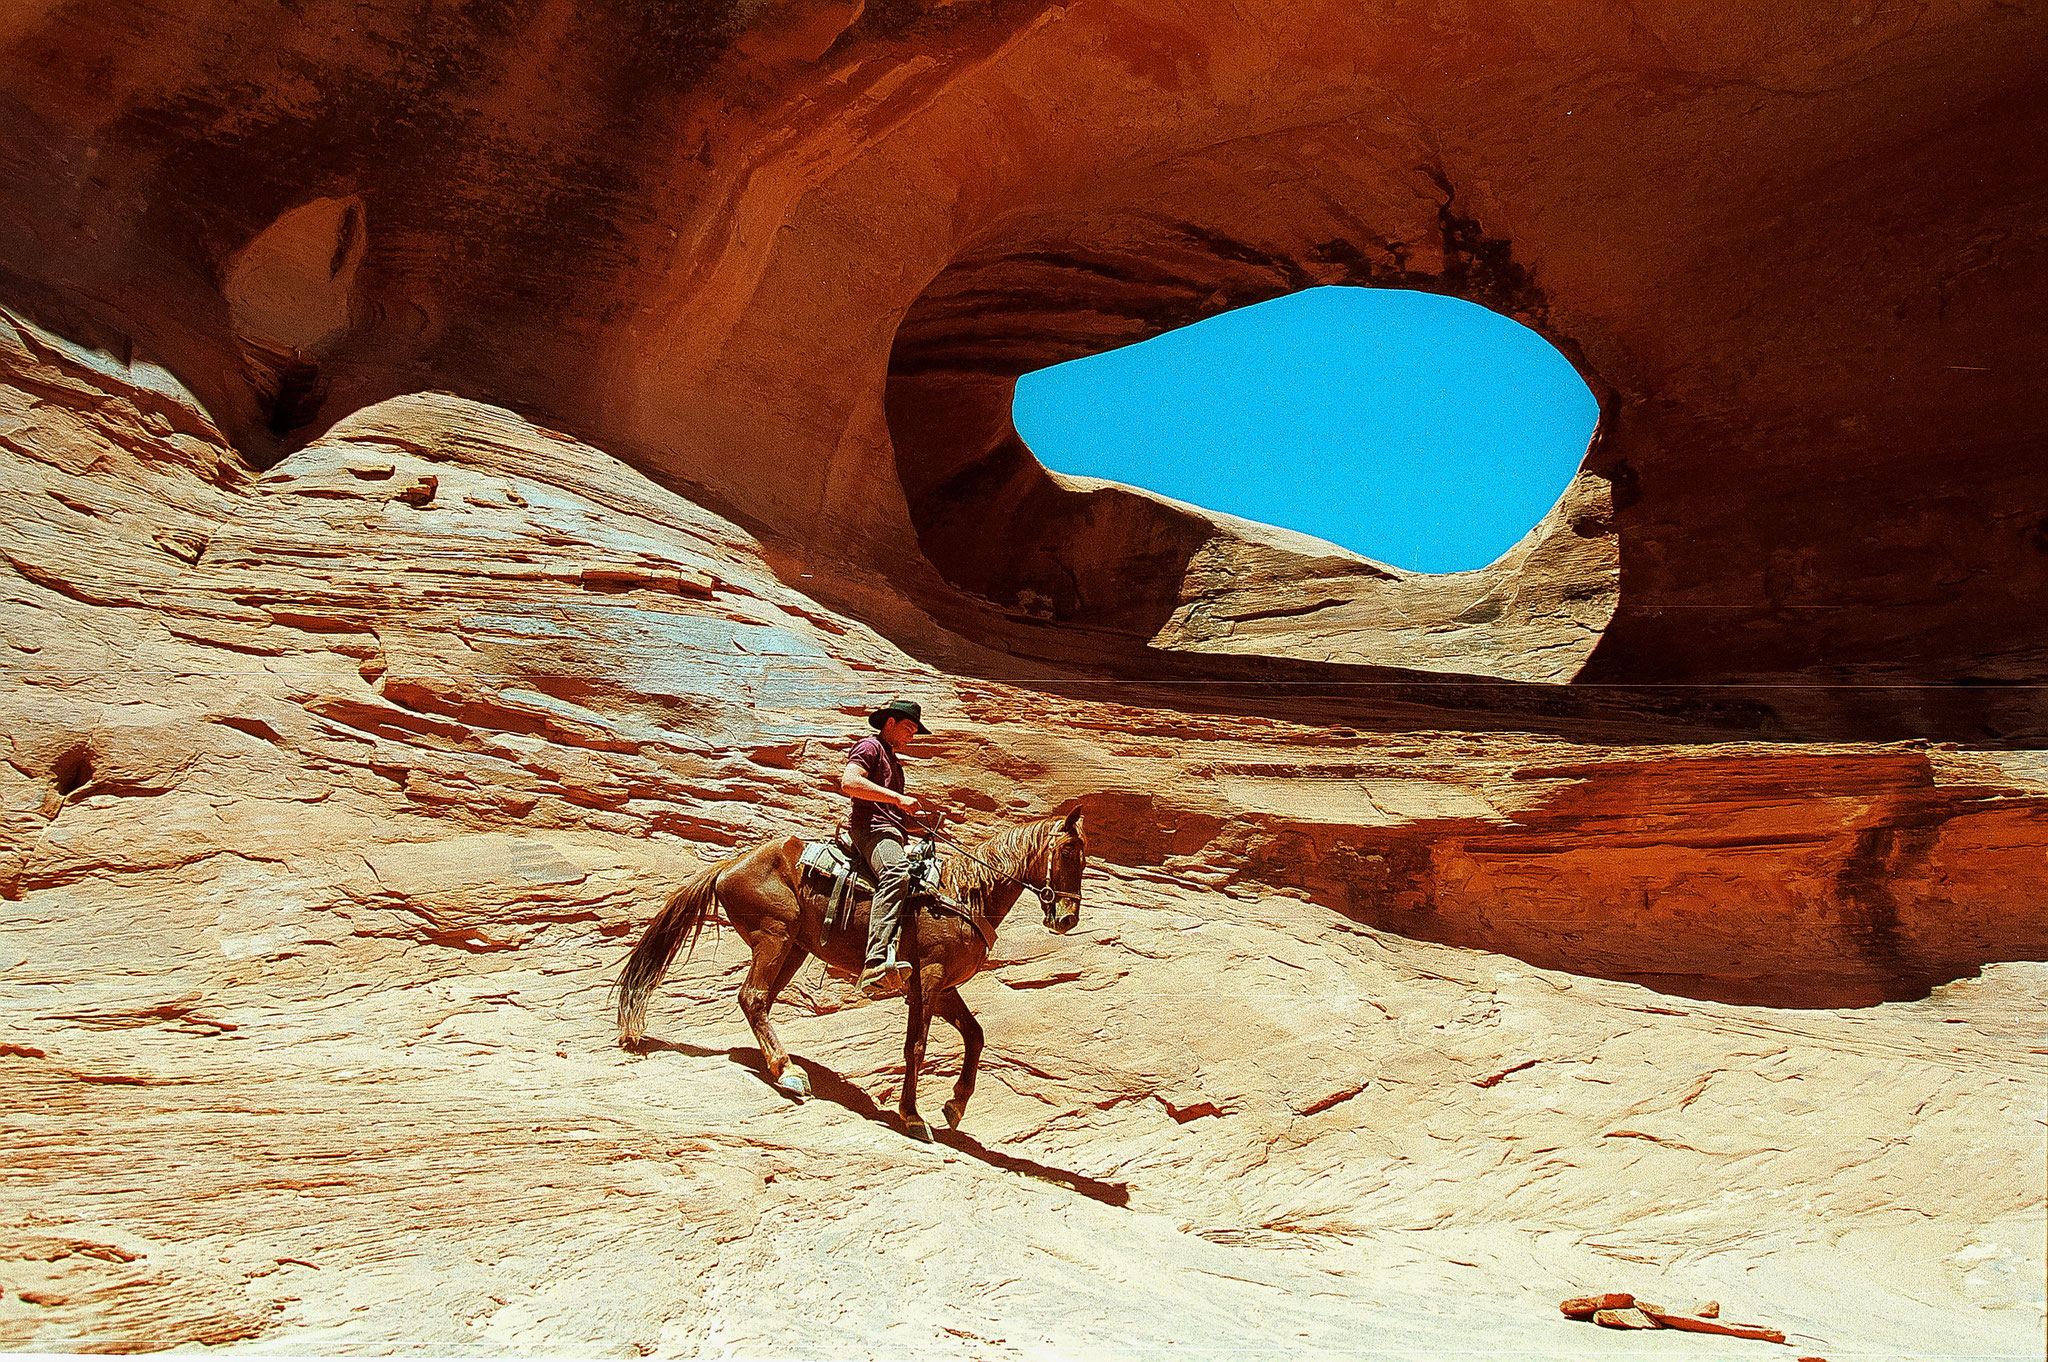 © Hans G. Lehmann |  Cowboy on horseback  in Monument Valley